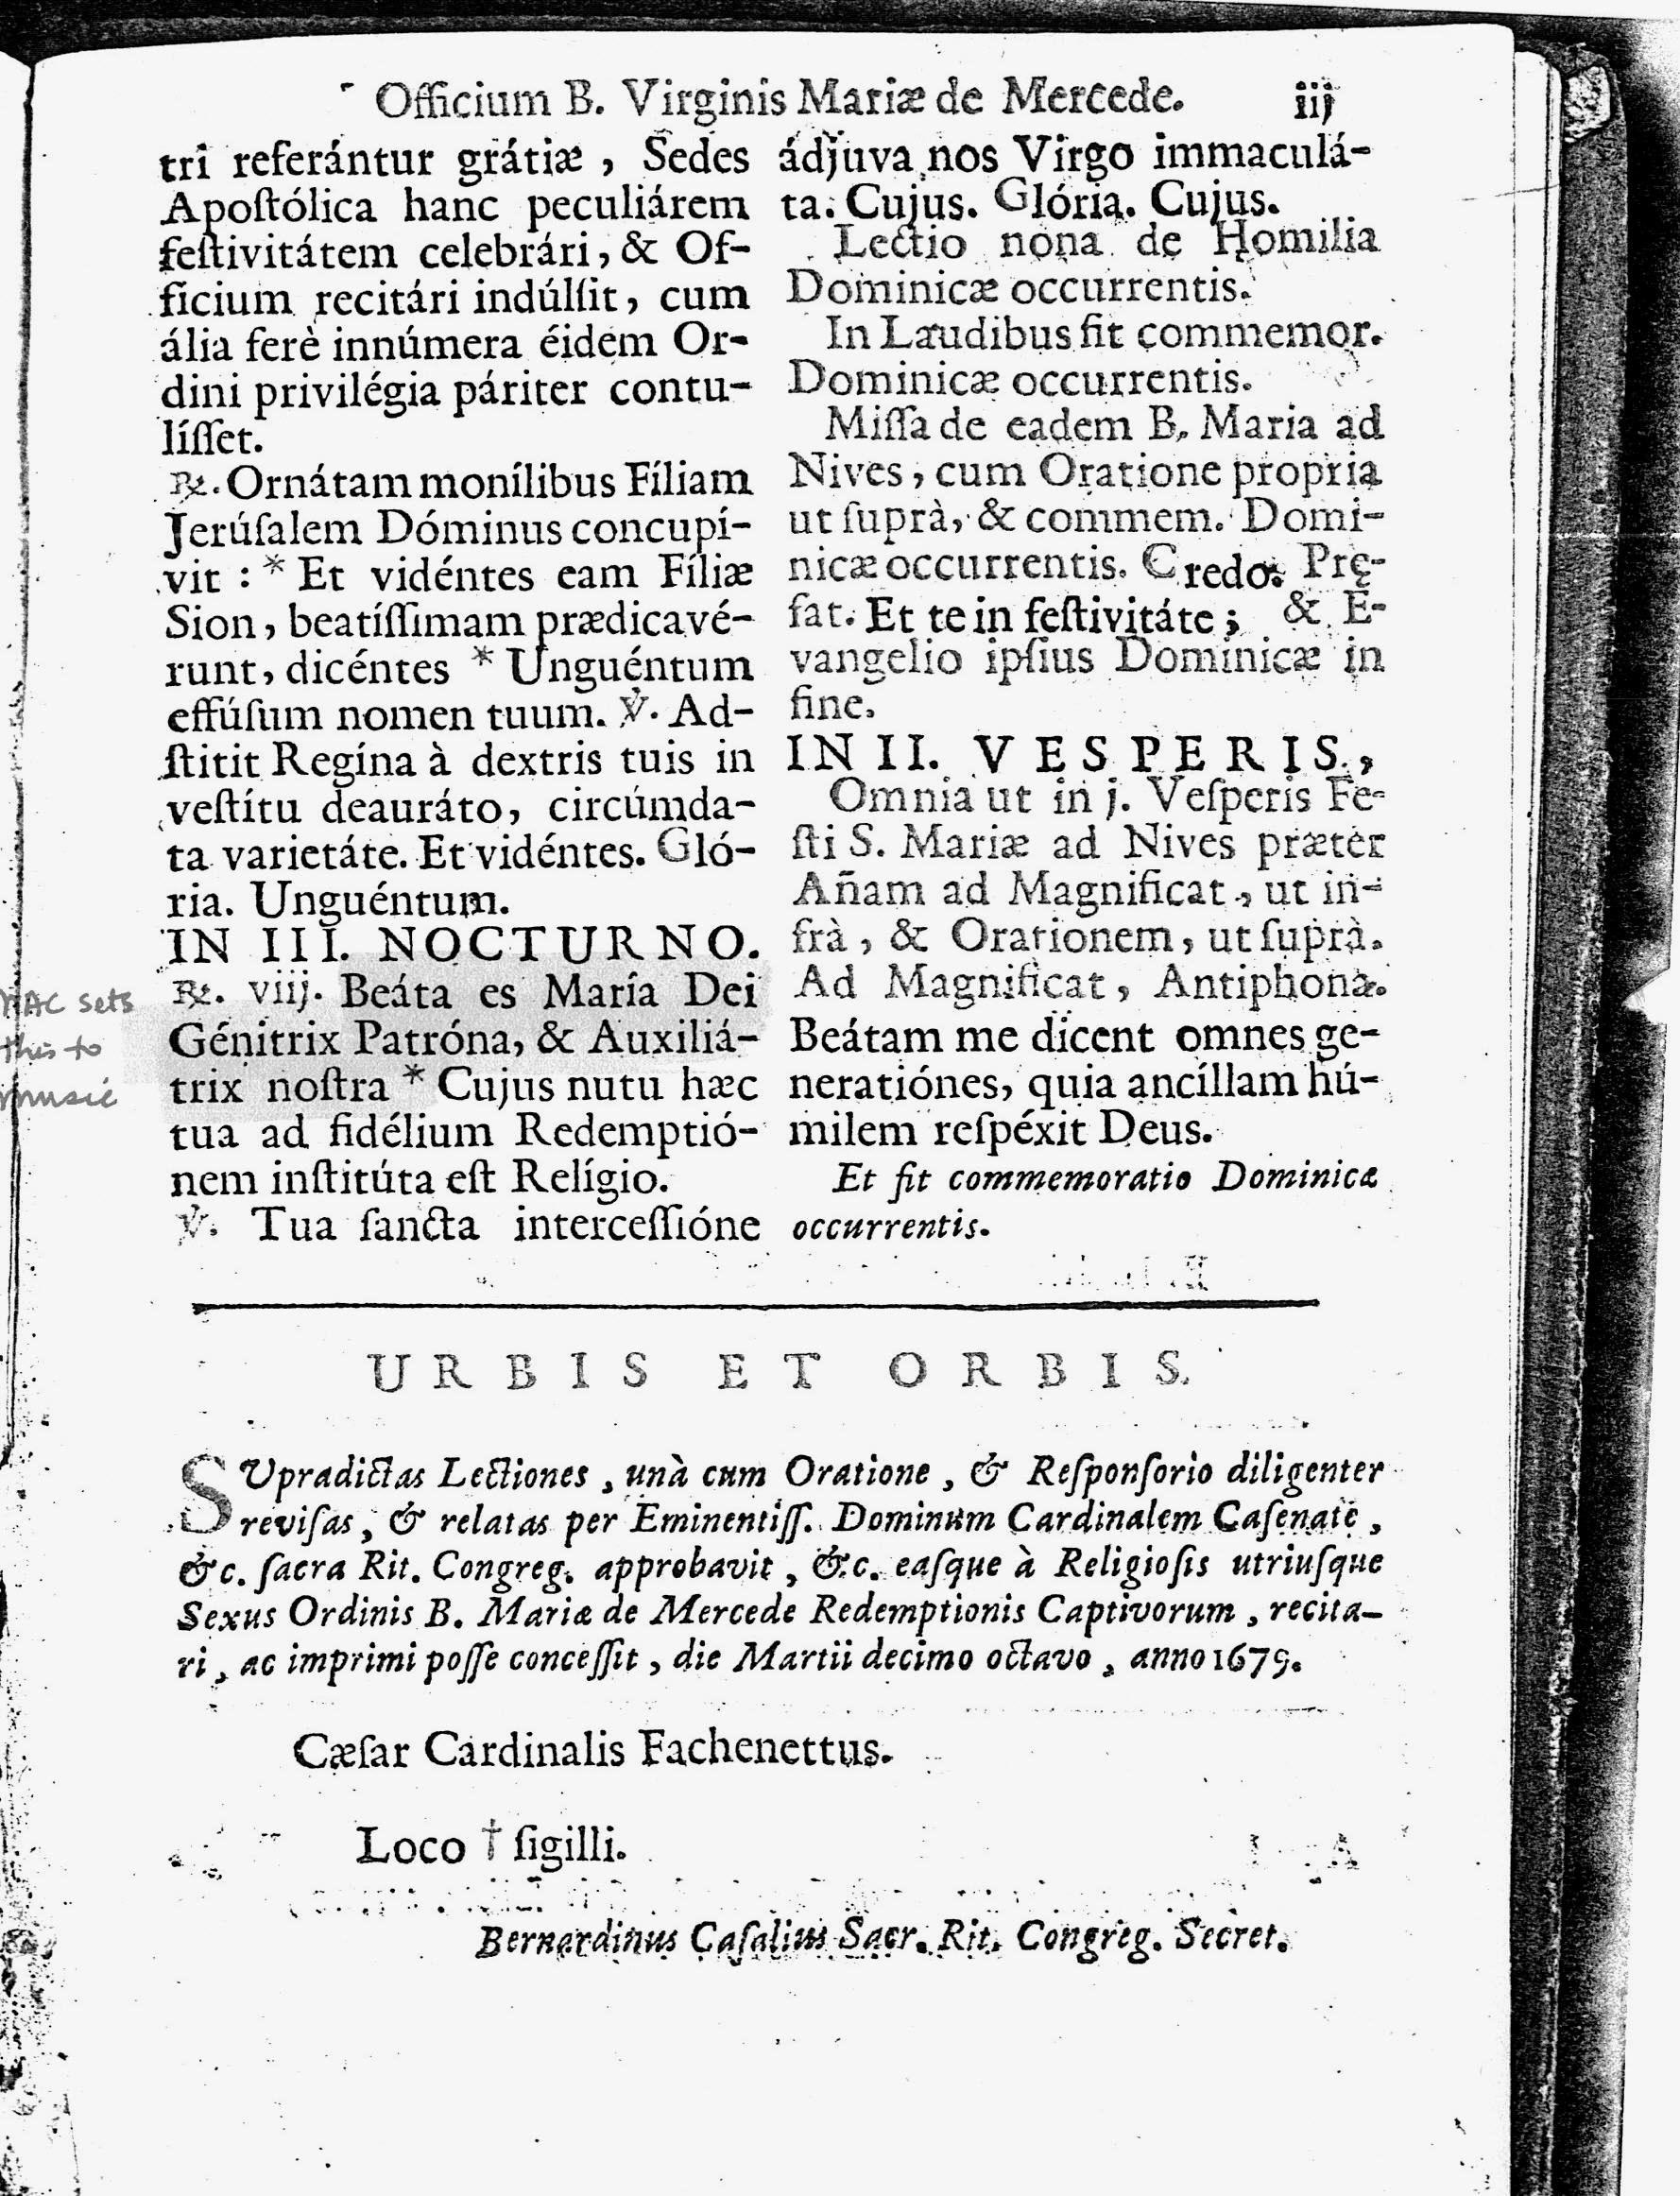 page 3: in grey, text set by Charpentier